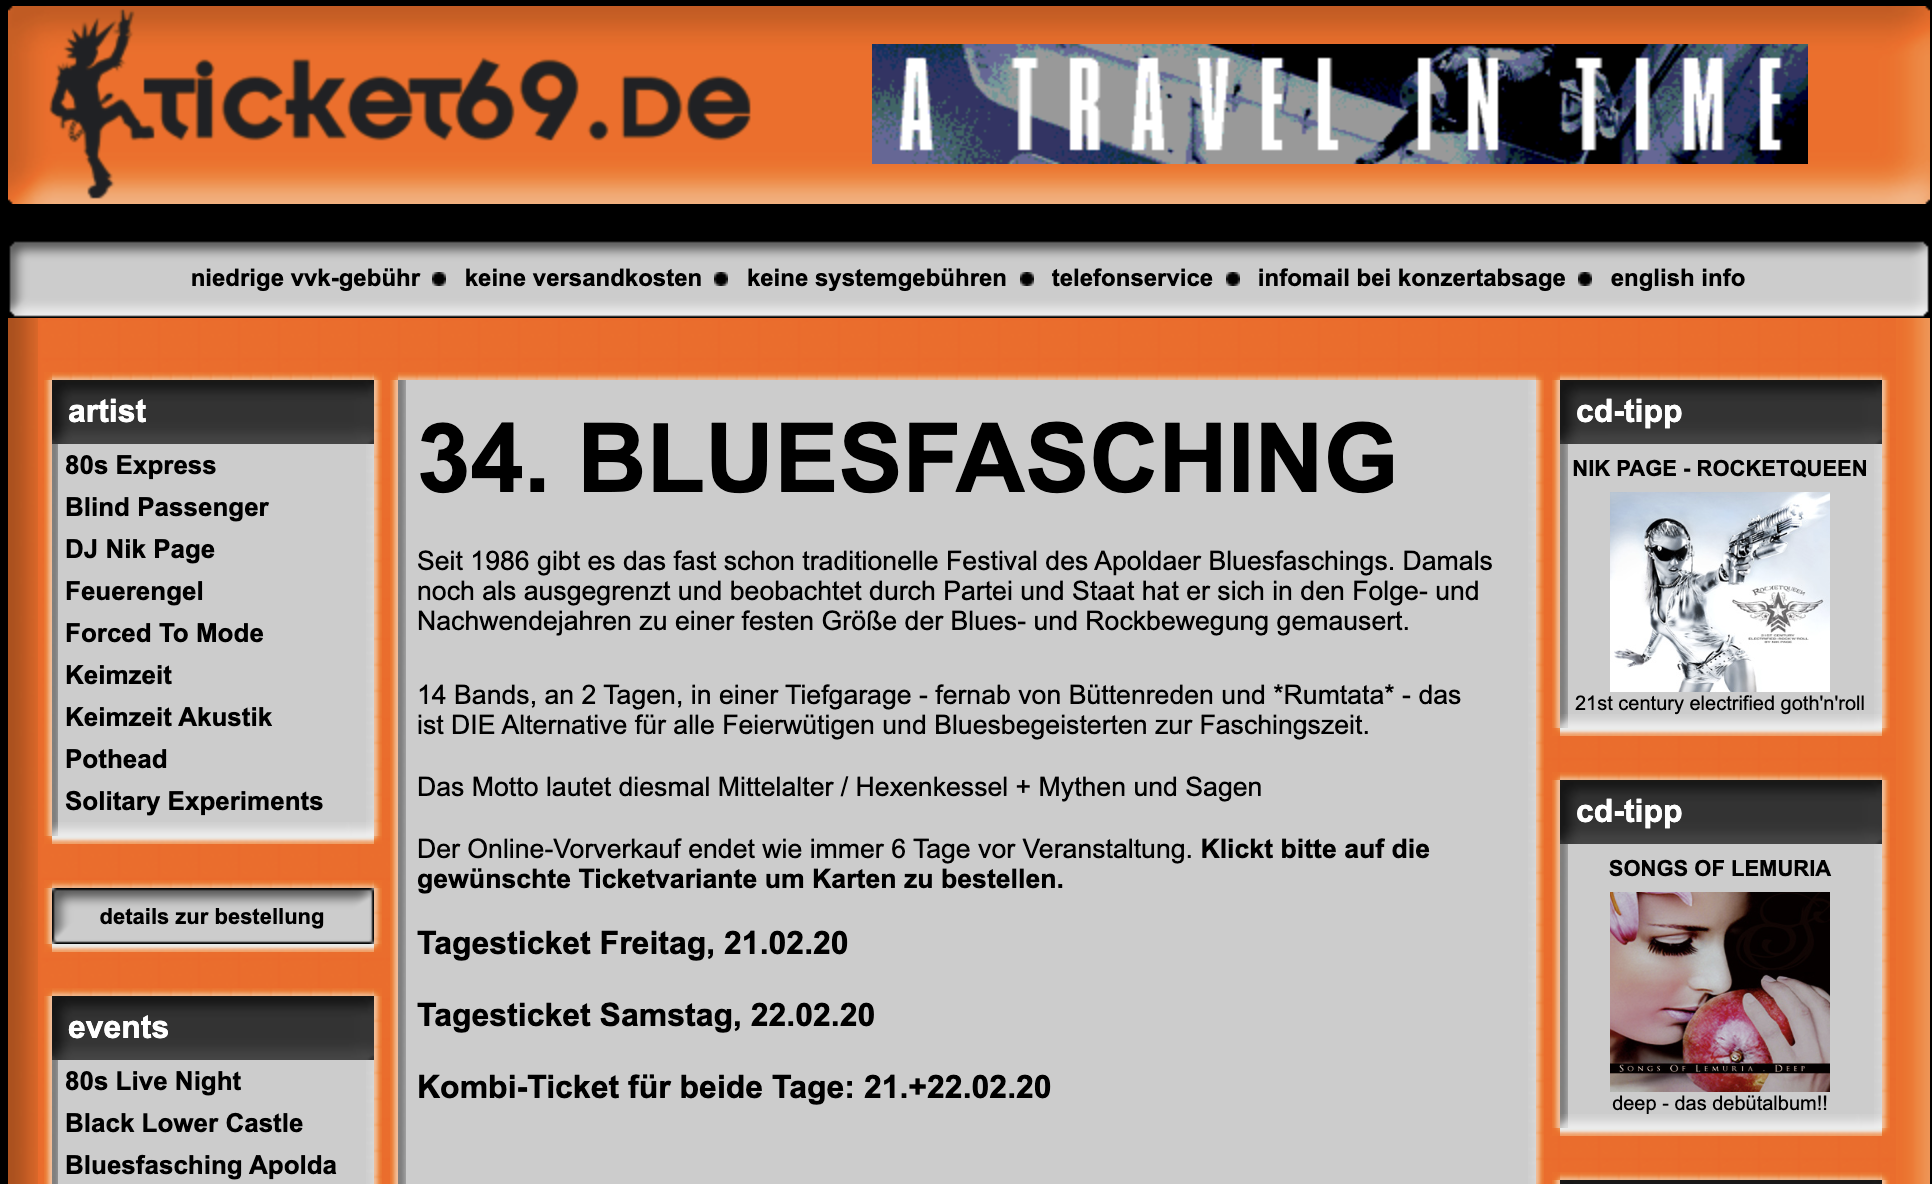 34. Bluesfasching